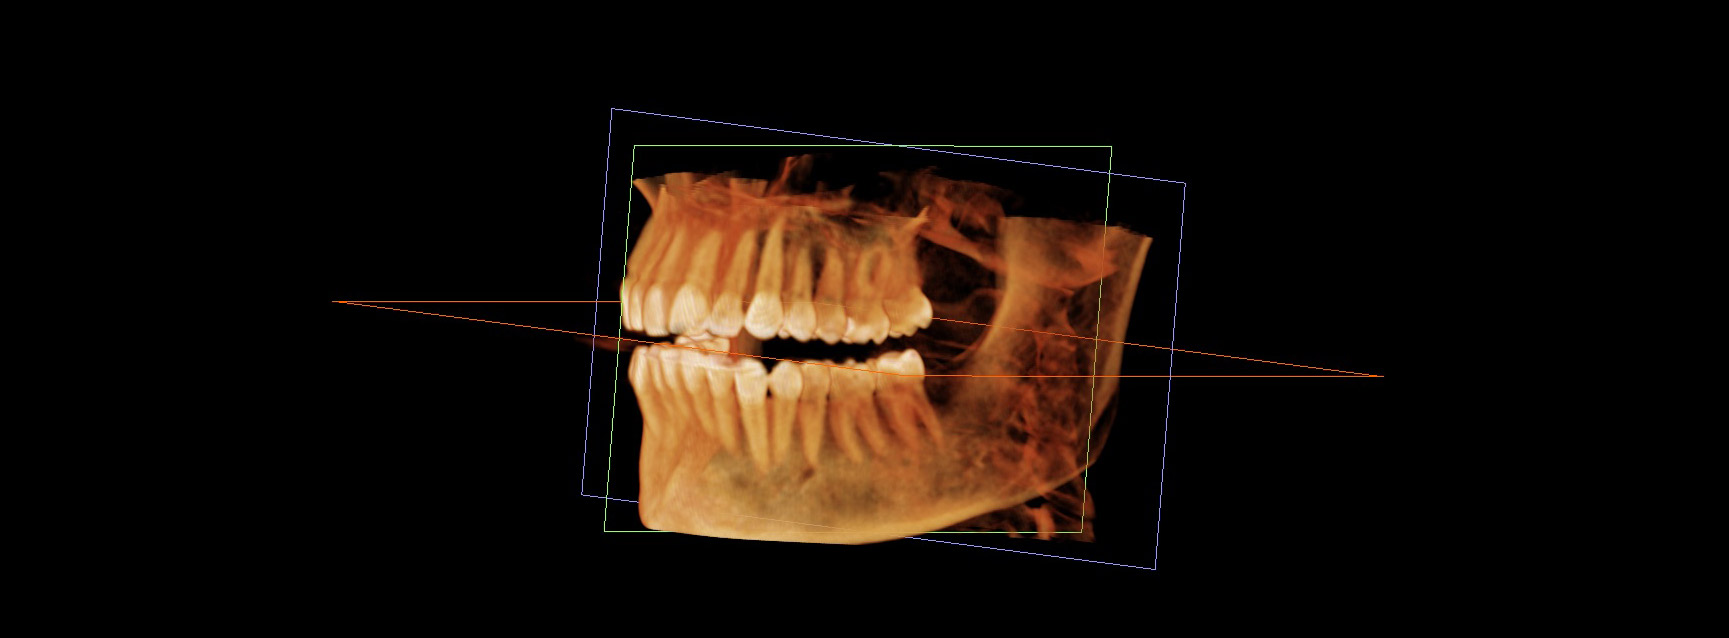 3D Imaging | Dental Care at Moon Valley